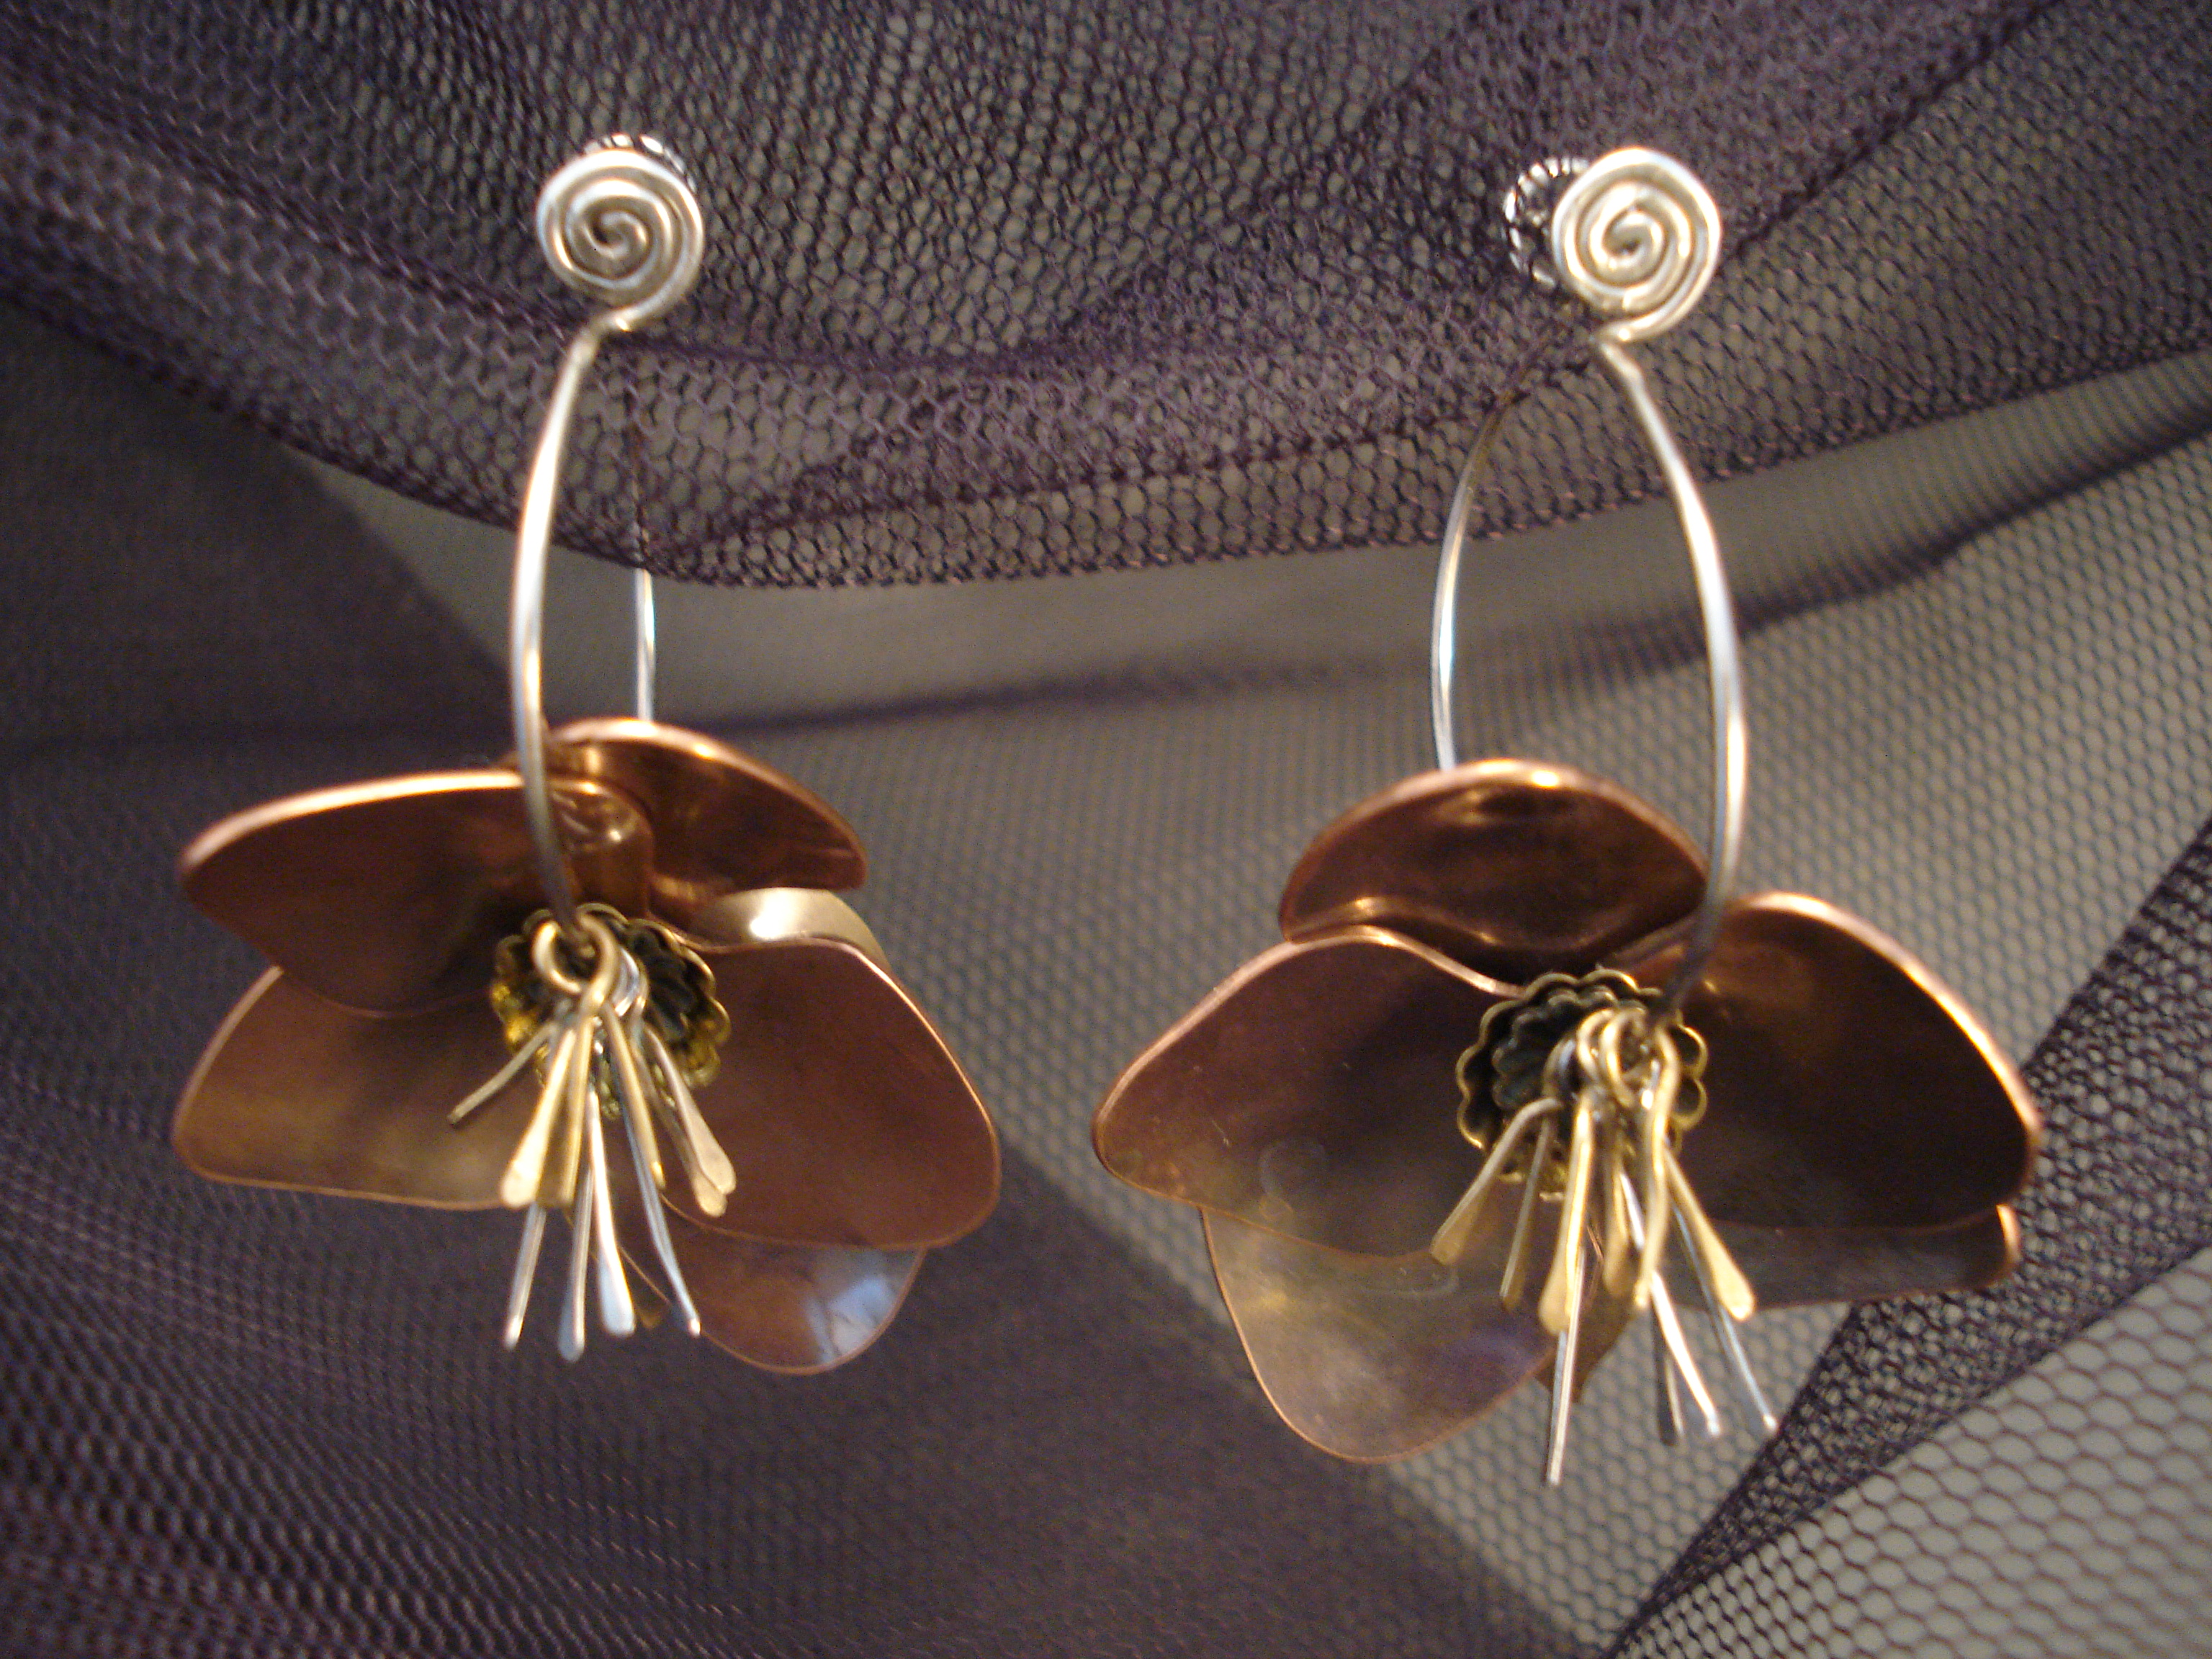 hellebore flower earrings